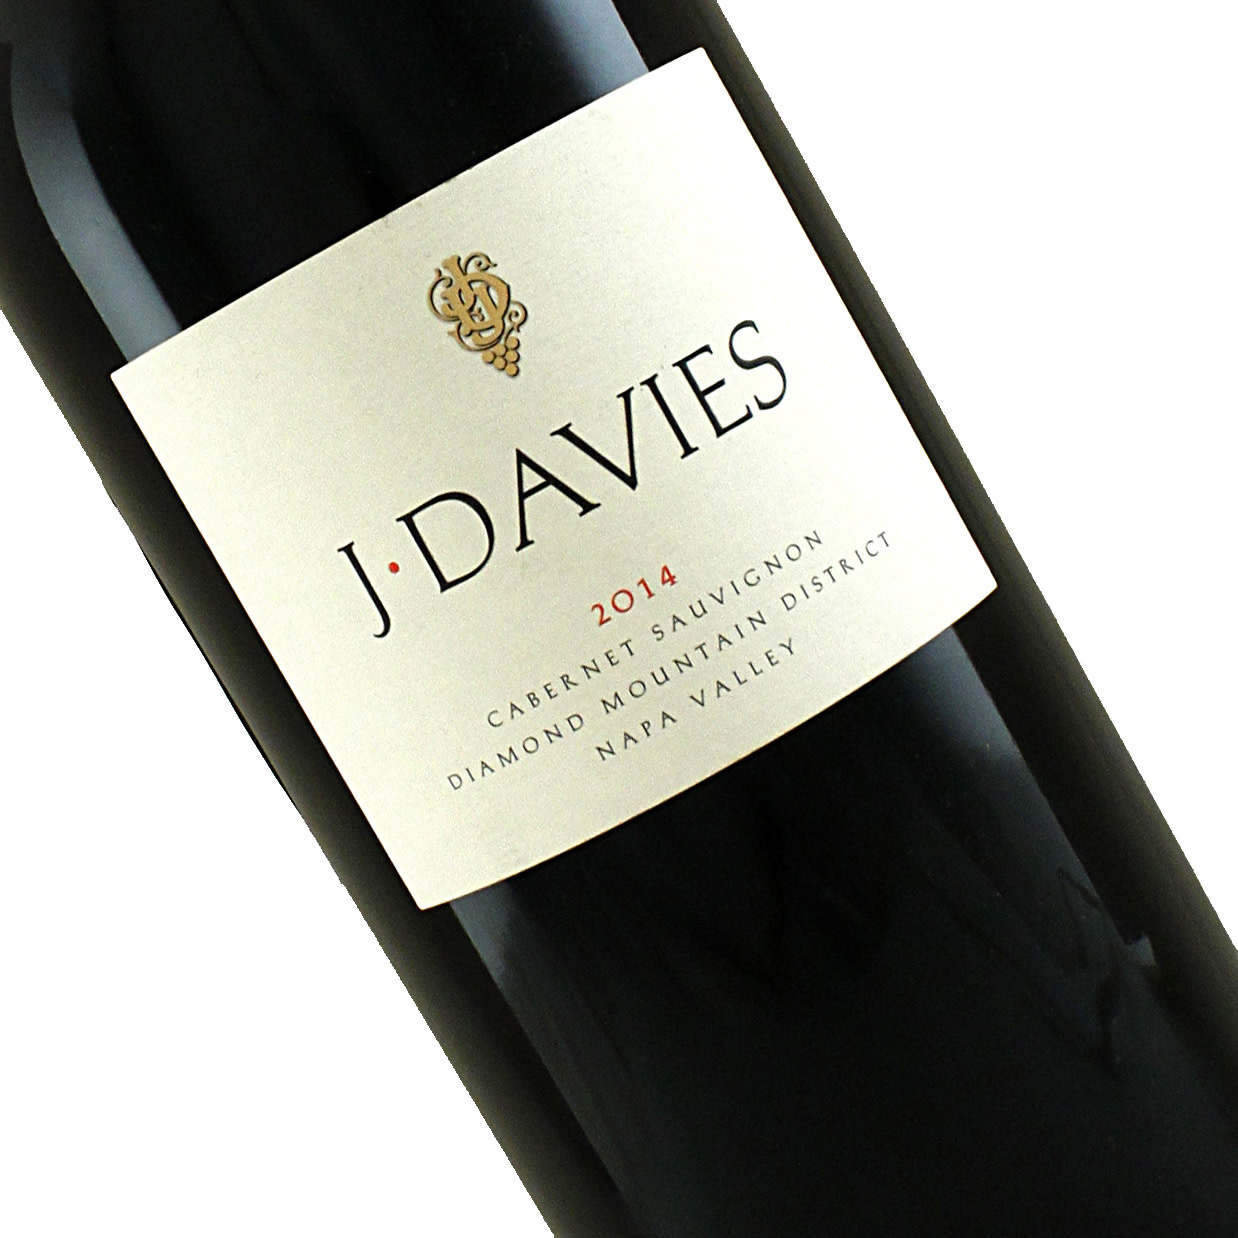 J. Davies Diamond Mountain District 2014 Cabernet Sauvignon, Napa Valley